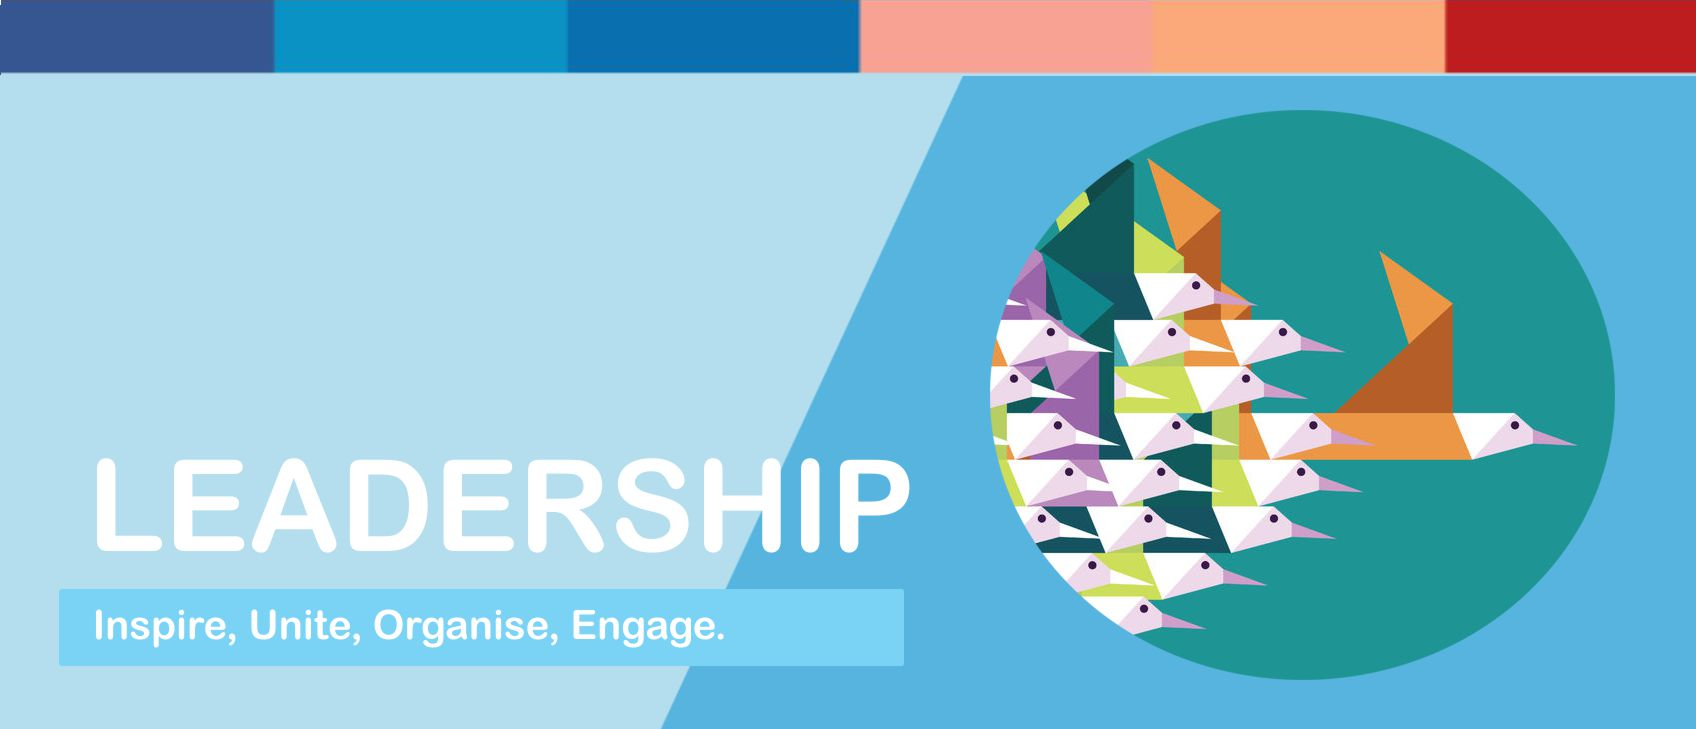 Leadership Competency Examples